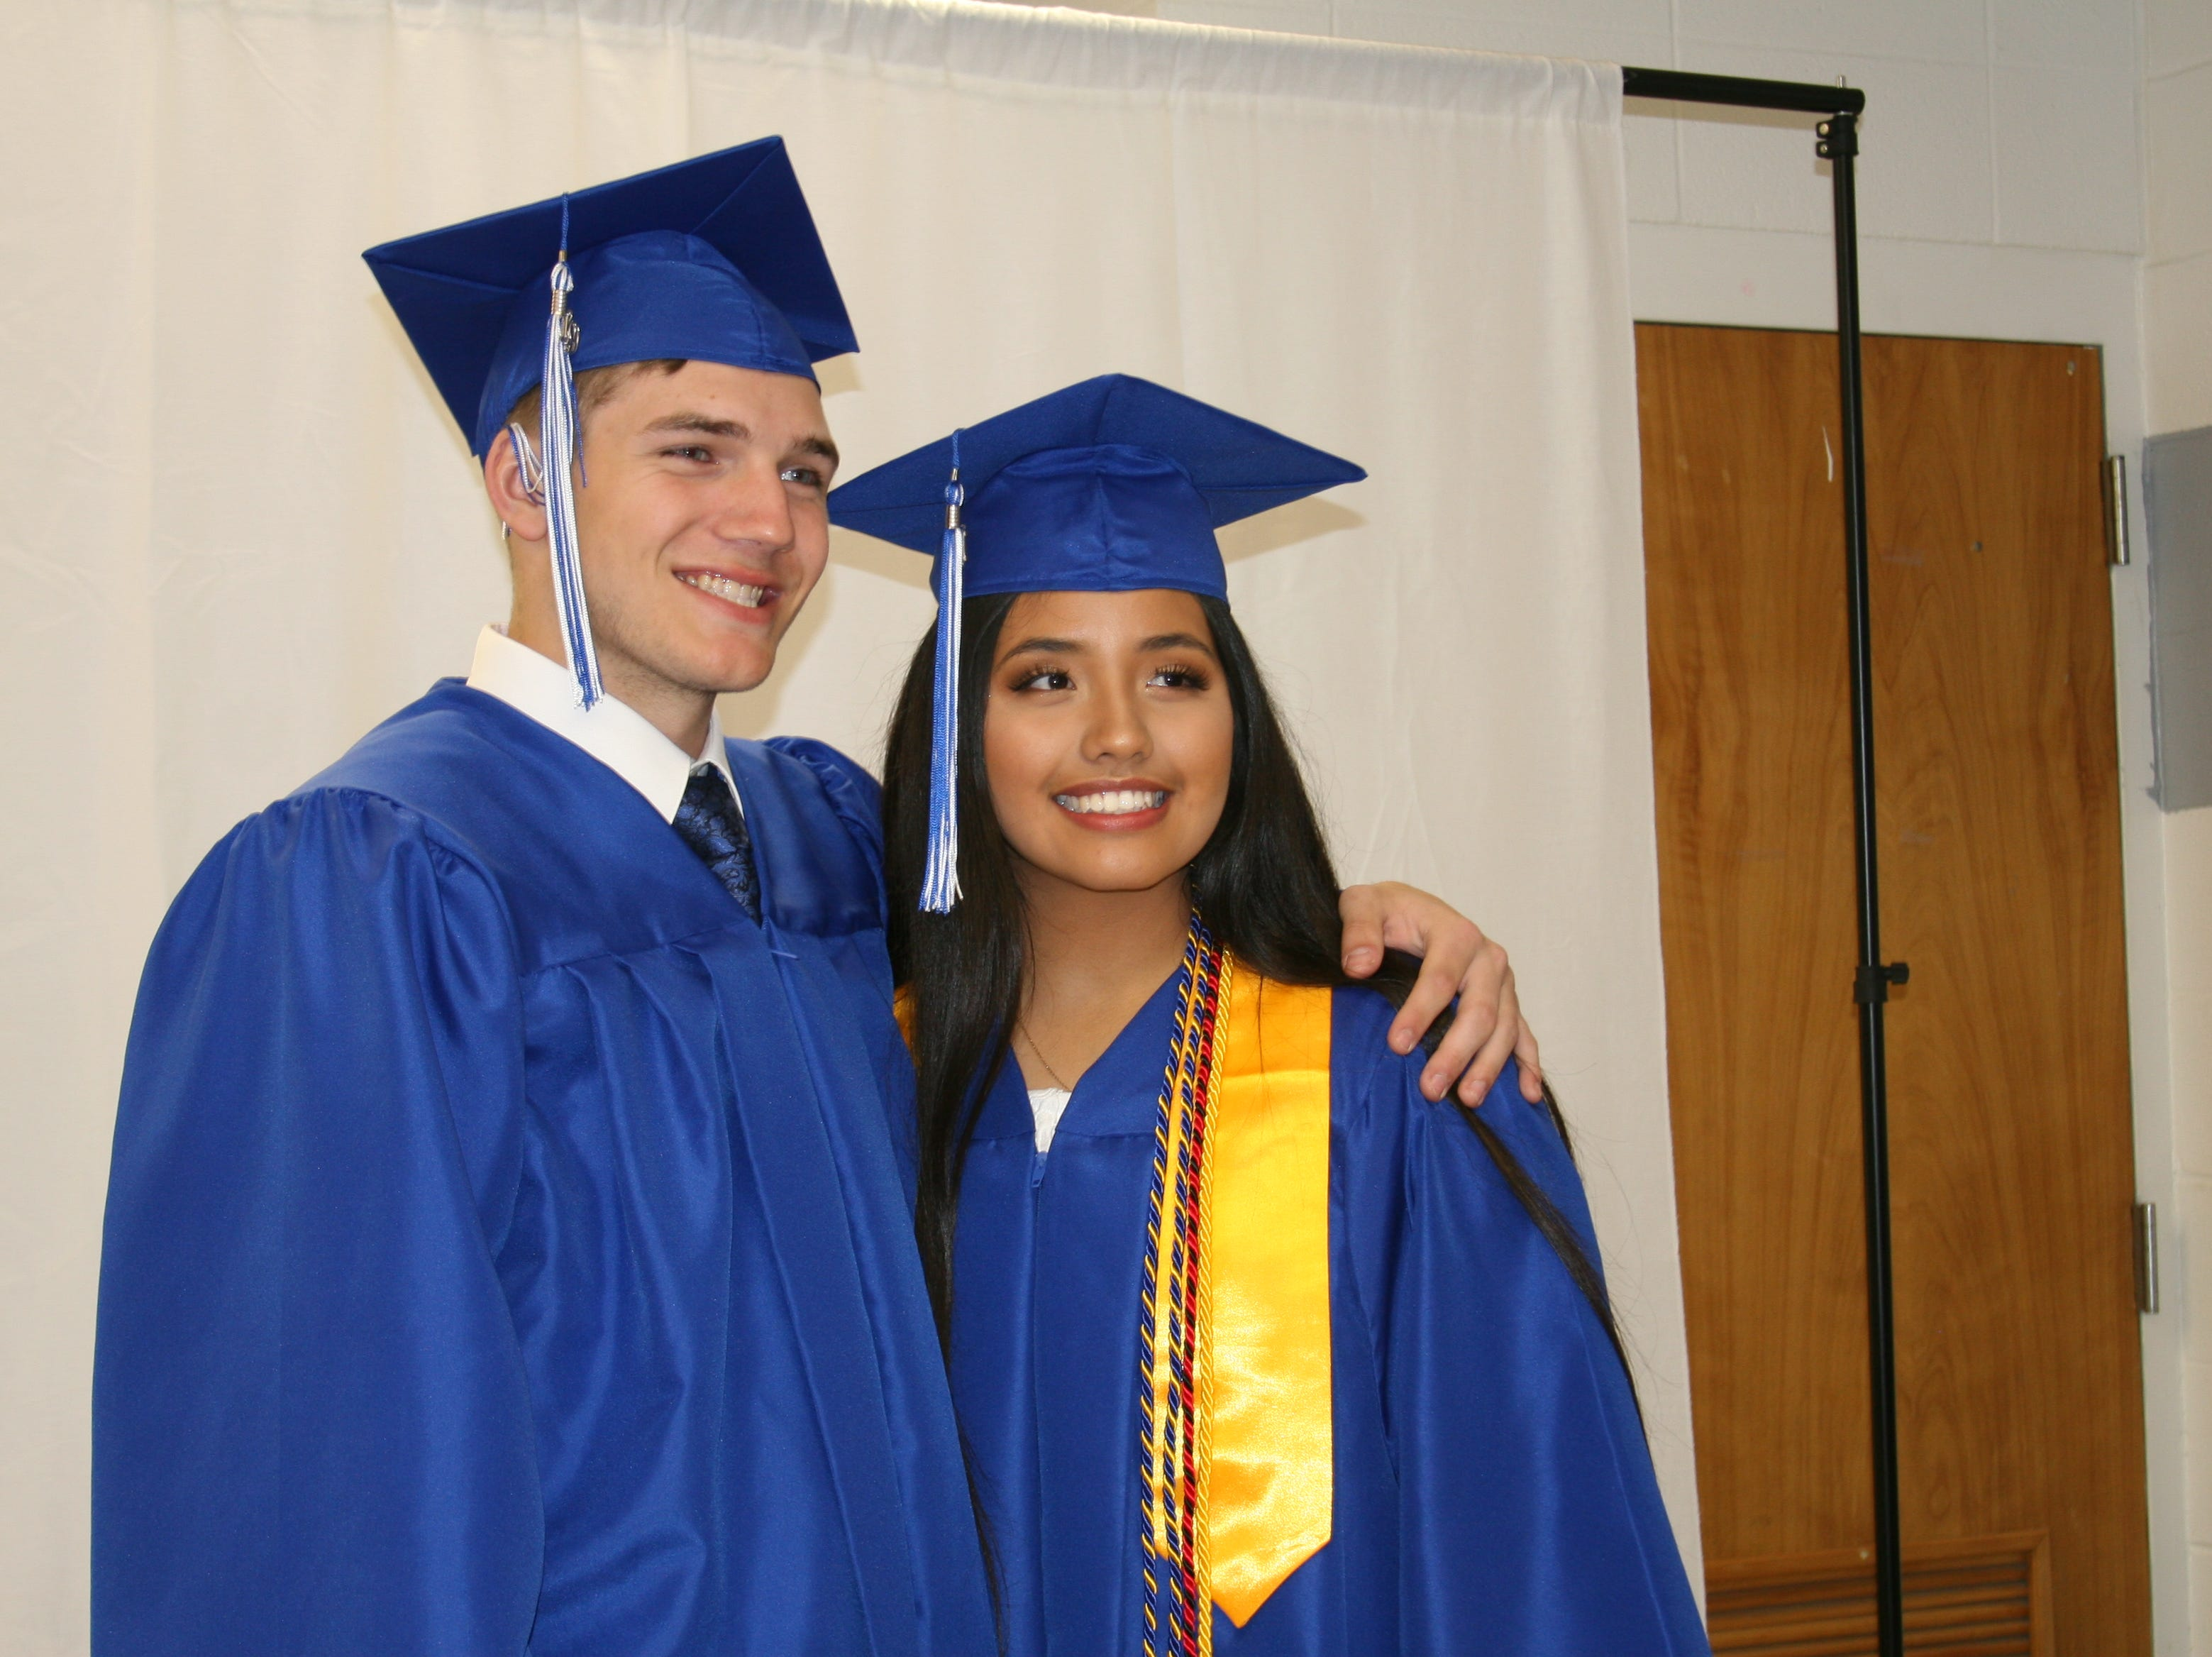 Cotter High School graduates had several backdrops available Saturday night before their graduation ceremony in which they could take photographs with their classmates.